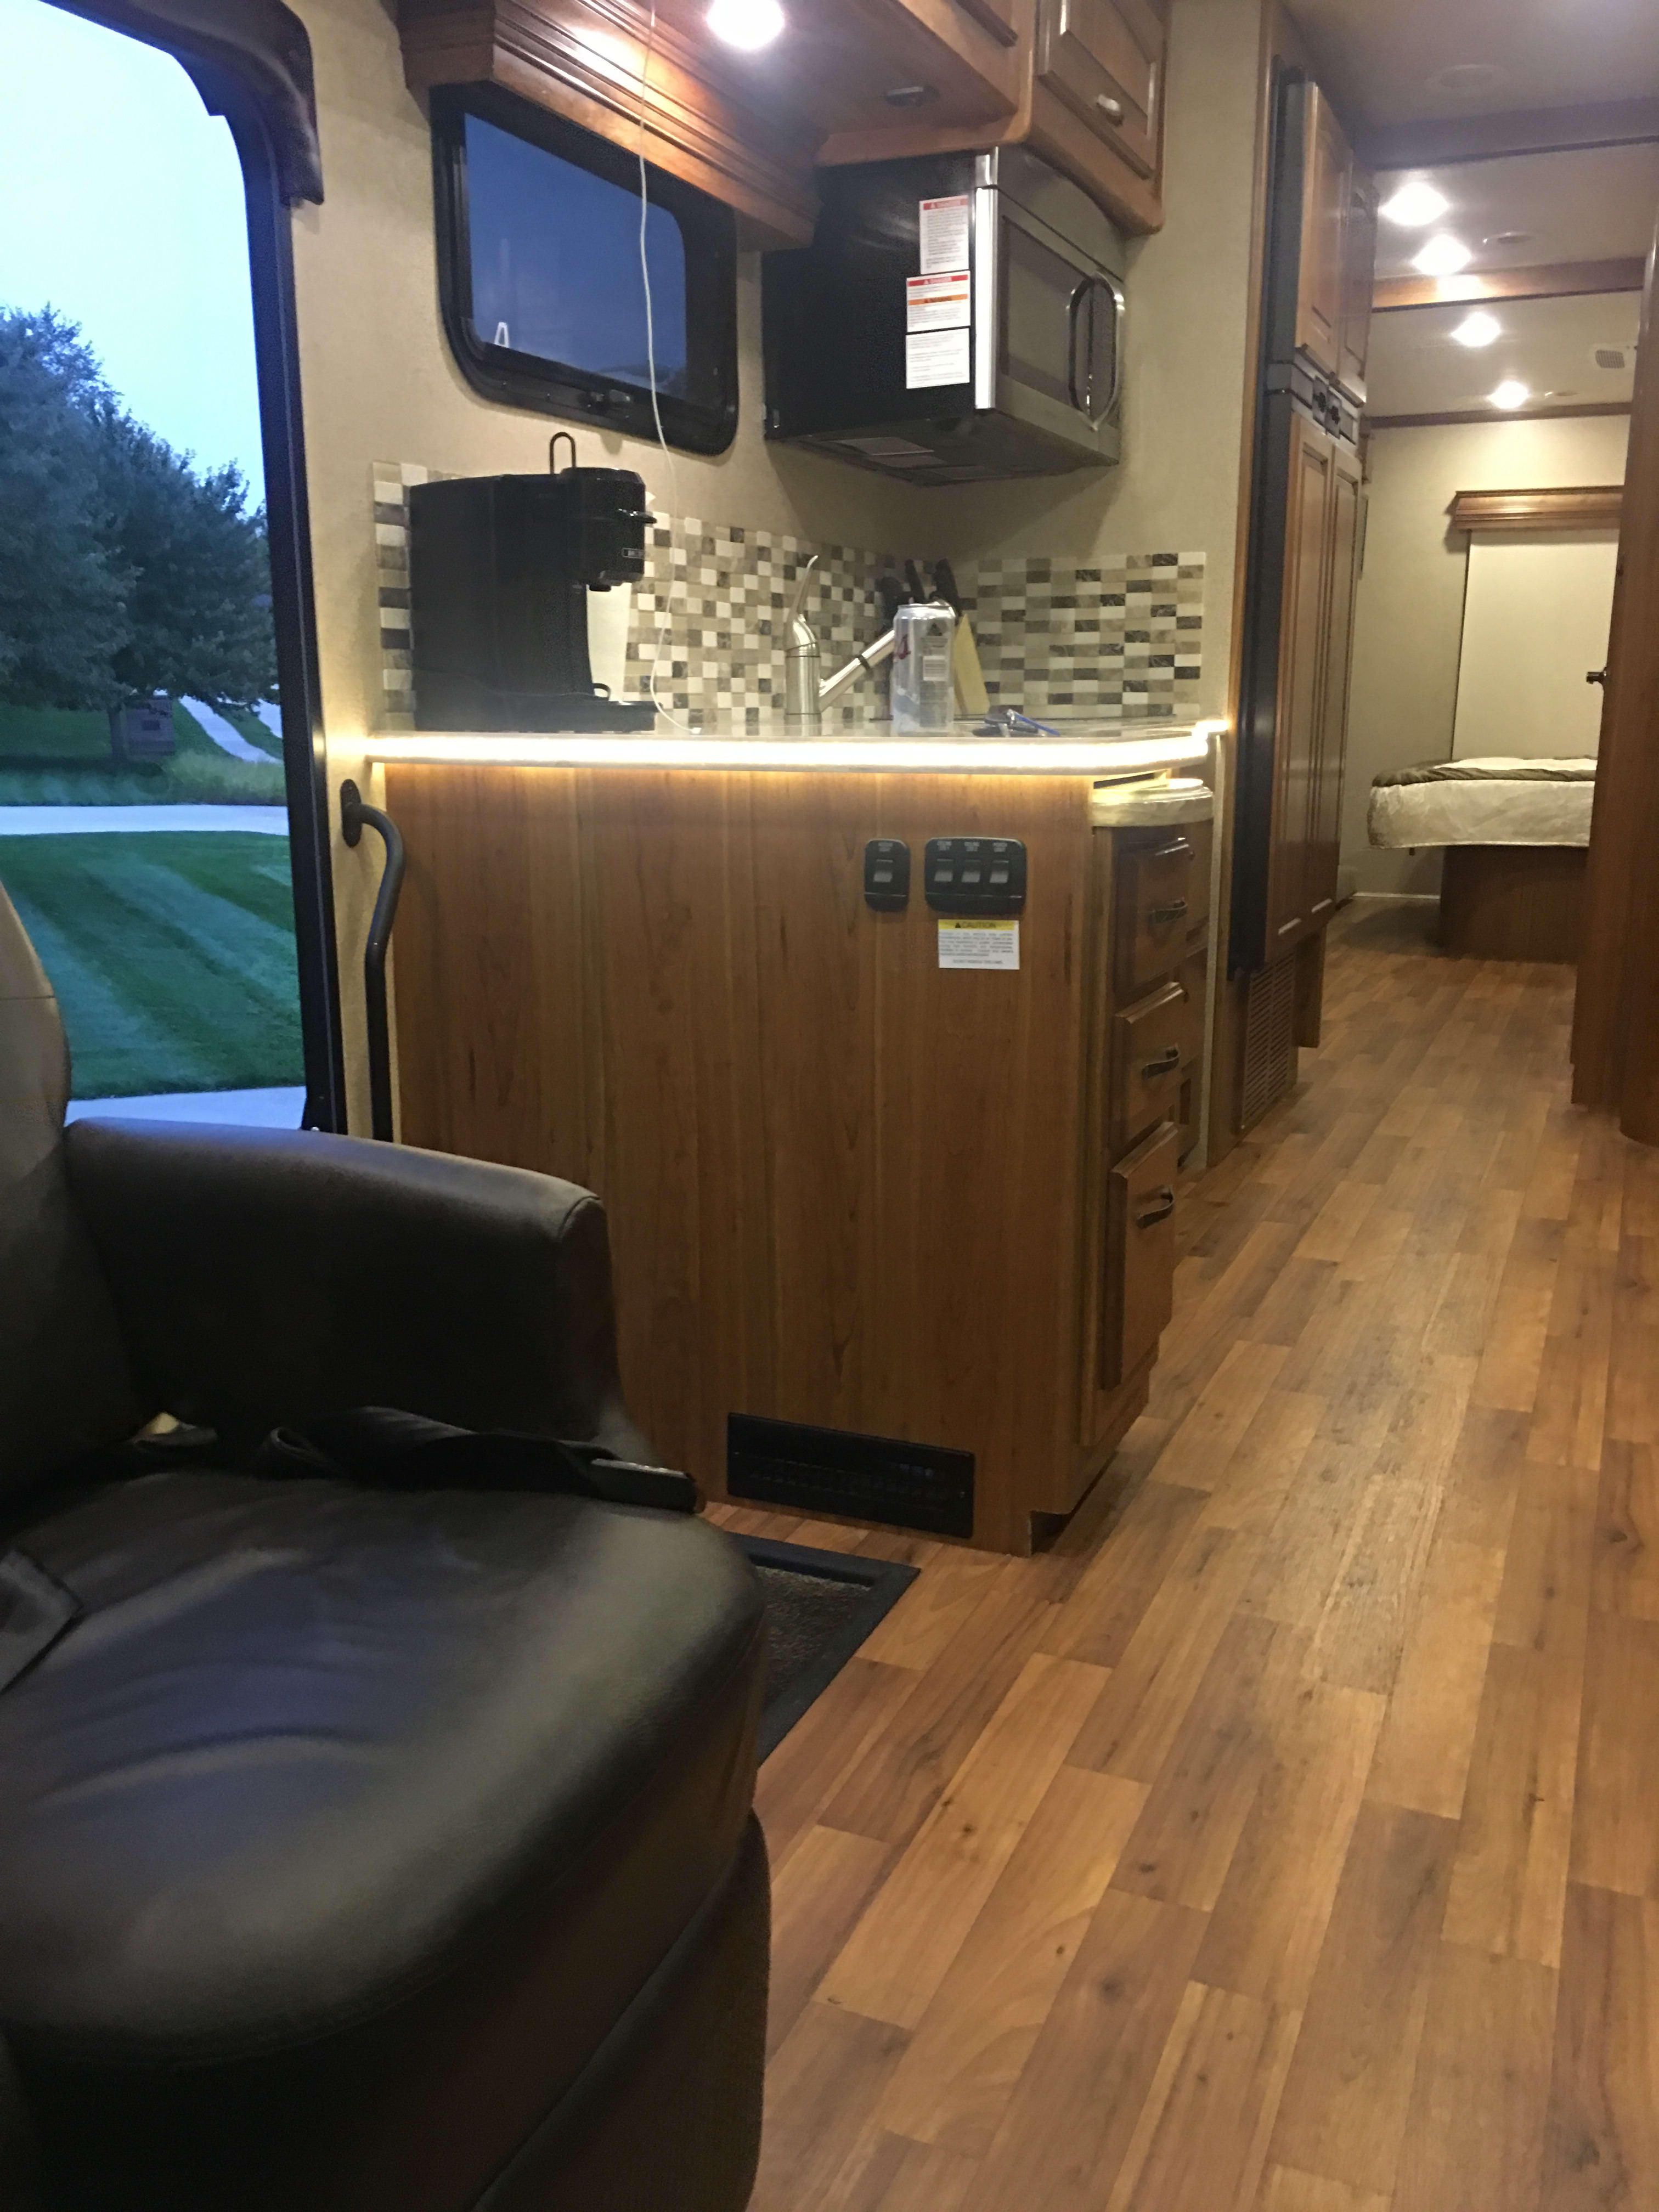 Nice size kitchen with microwave and electric stove. Jayco Seneca 2016